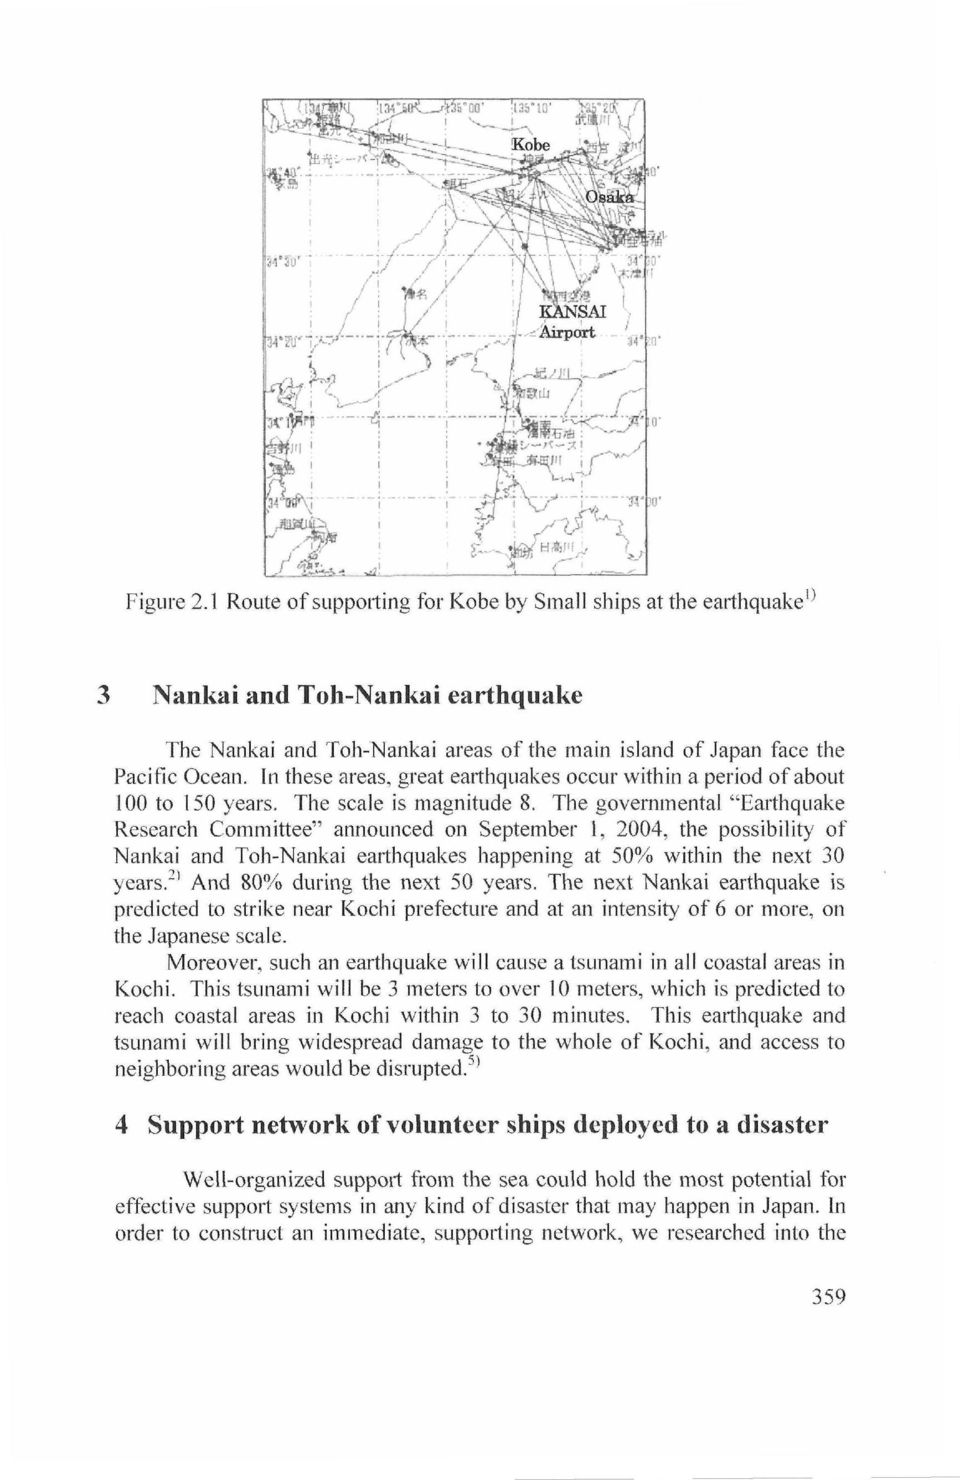 "The governmental ""Earthquake Research Committee"" announced on September 1, 2004, the possibility of Nankai and Toh-Nankai earthquakes happening at 50% within the next 30 years."